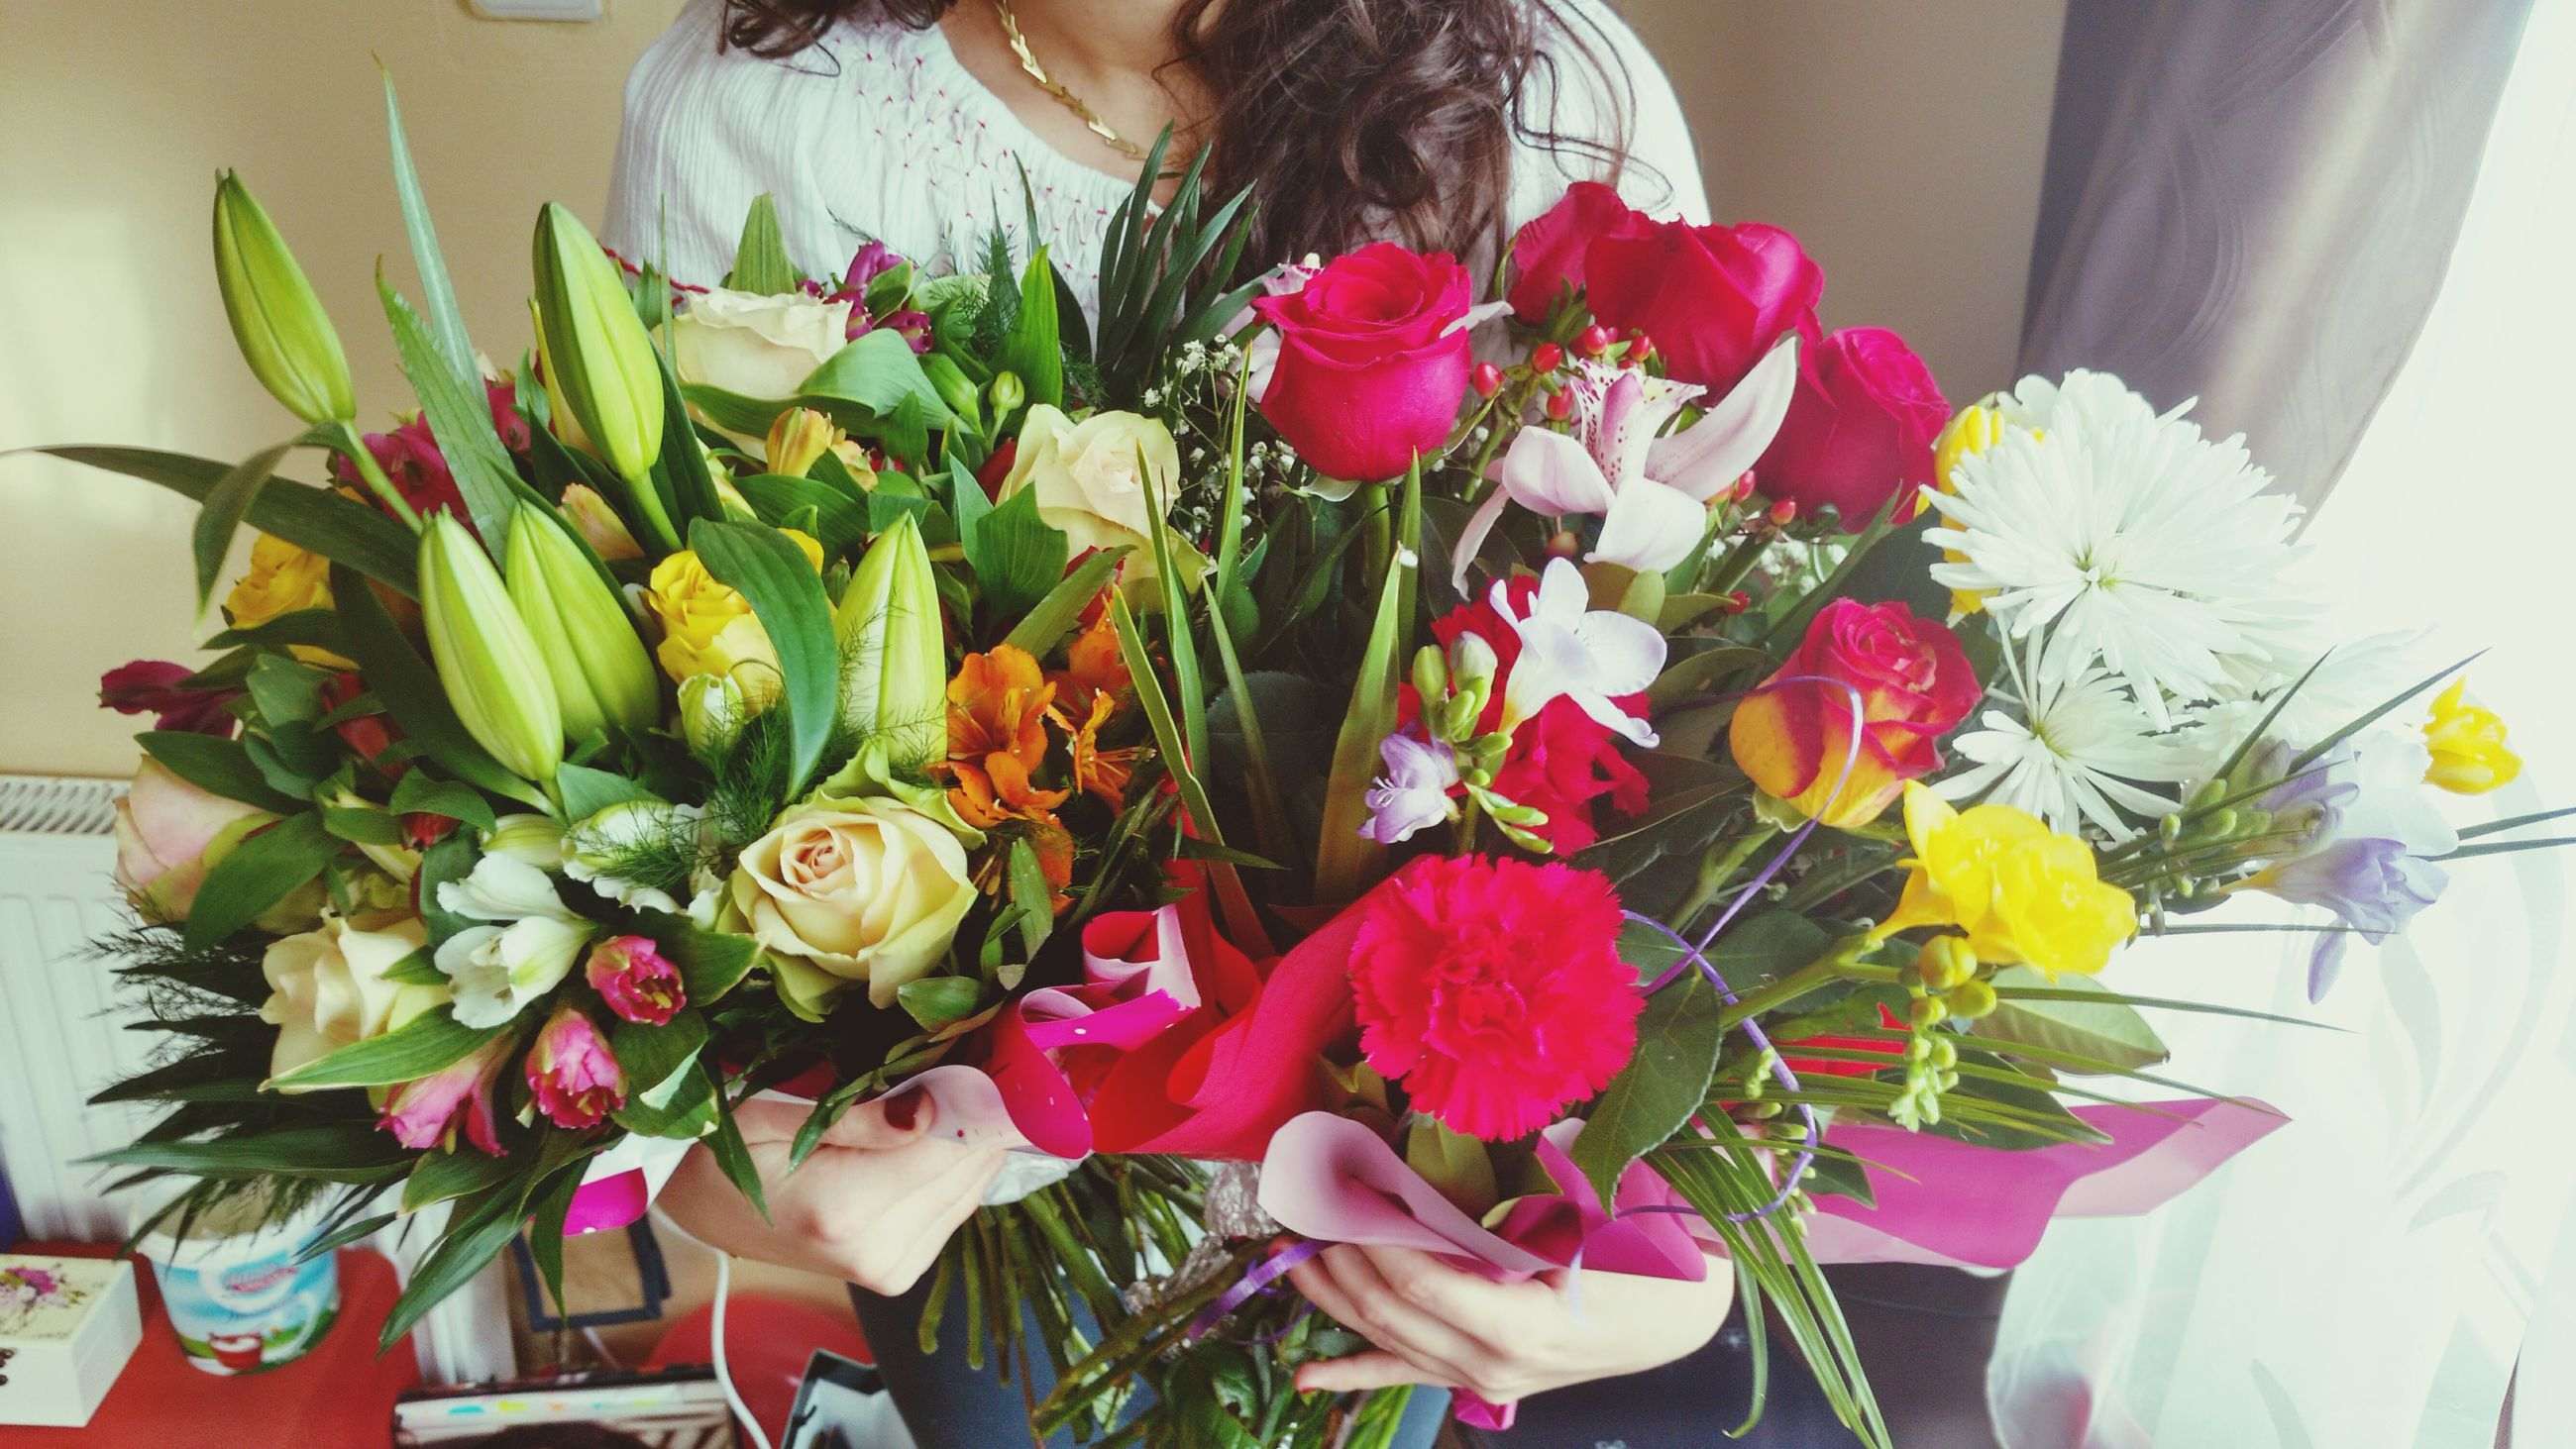 flower, indoors, freshness, bouquet, vase, fragility, lifestyles, bunch of flowers, variation, holding, home interior, flower arrangement, table, standing, person, petal, casual clothing, leisure activity